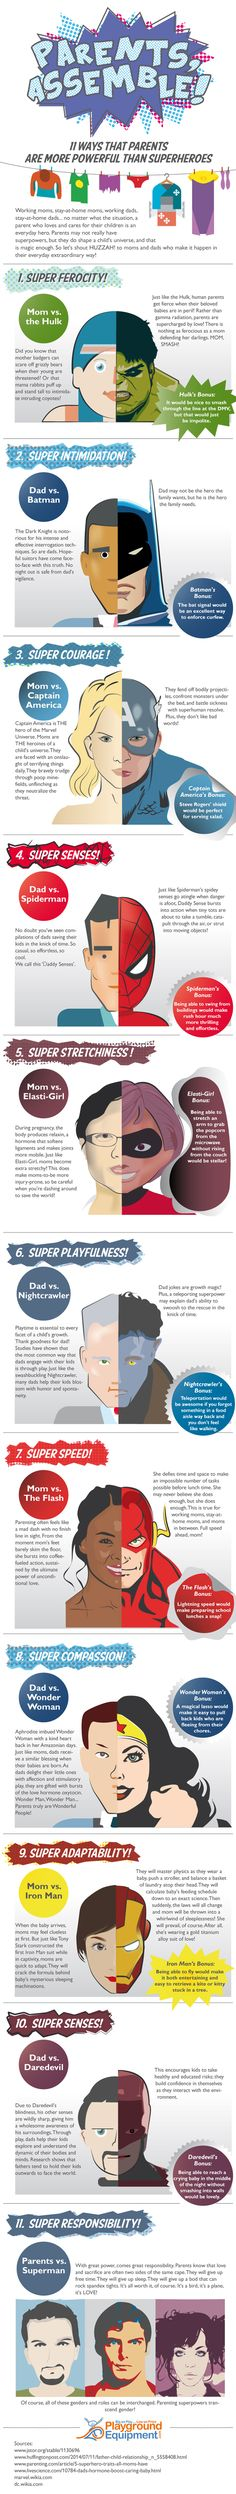 Who says parents can't make fantastic superheroes? This infographic delves into the super powers it will take to bring out the hero in every parent.